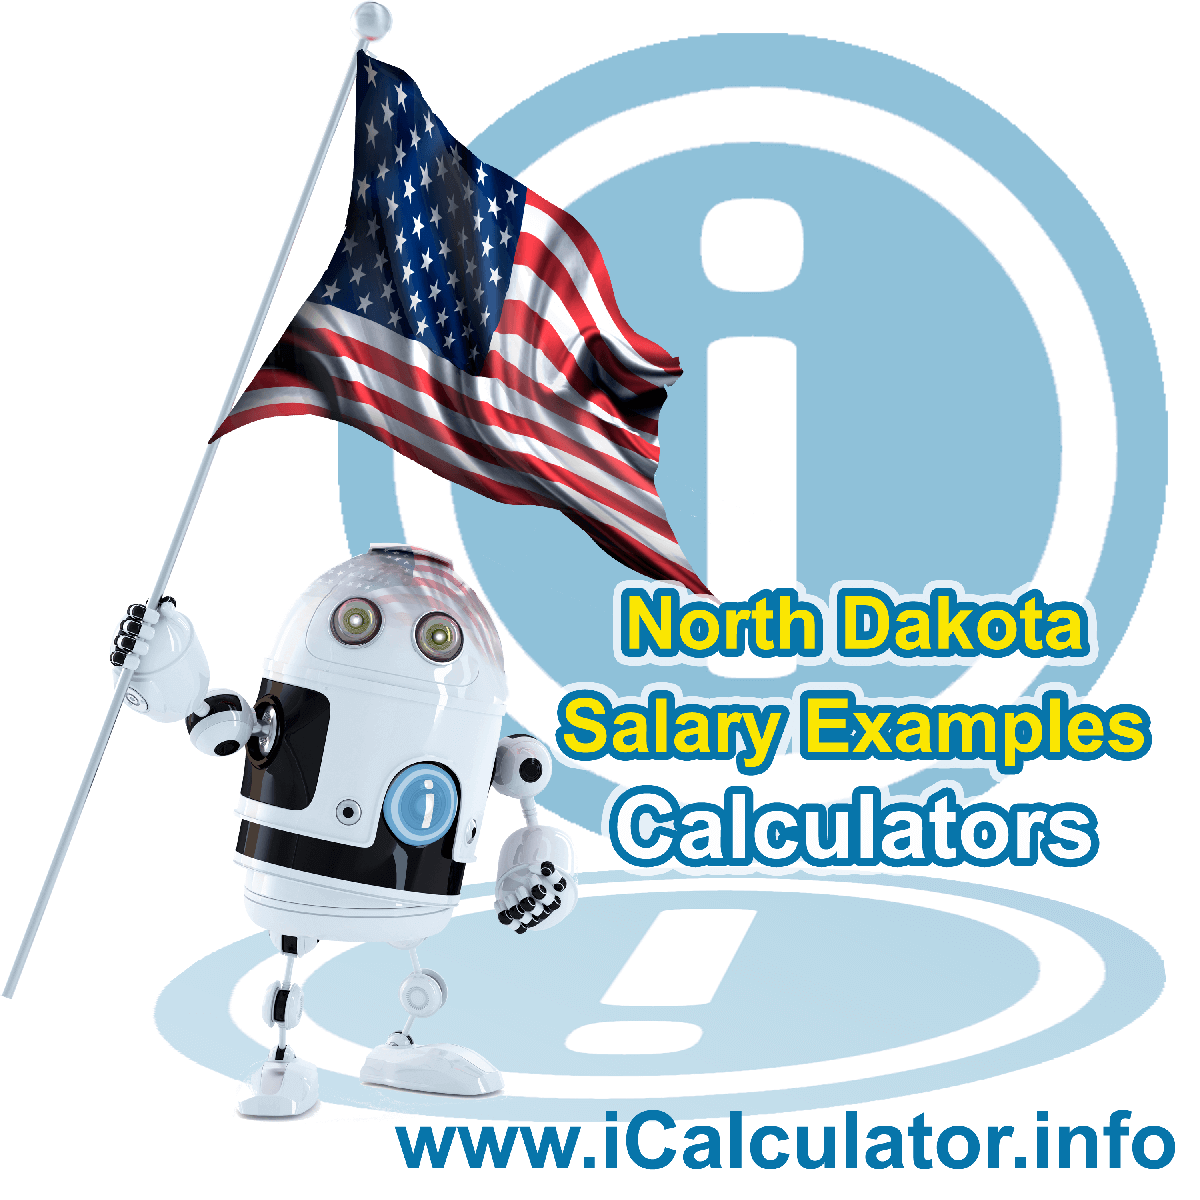 North Dakota Salary Example for a $55.00 Annual Salary in 2020 | iCalculator | $55.00 salary example for employee and employer paying North Dakota State tincome taxes. Detailed salary after tax calculation including North Dakota State Tax, Federal State Tax, Medicare Deductions, Social Security, Capital Gains and other income tax and salary deductions complete with supporting North Dakota state tax tables